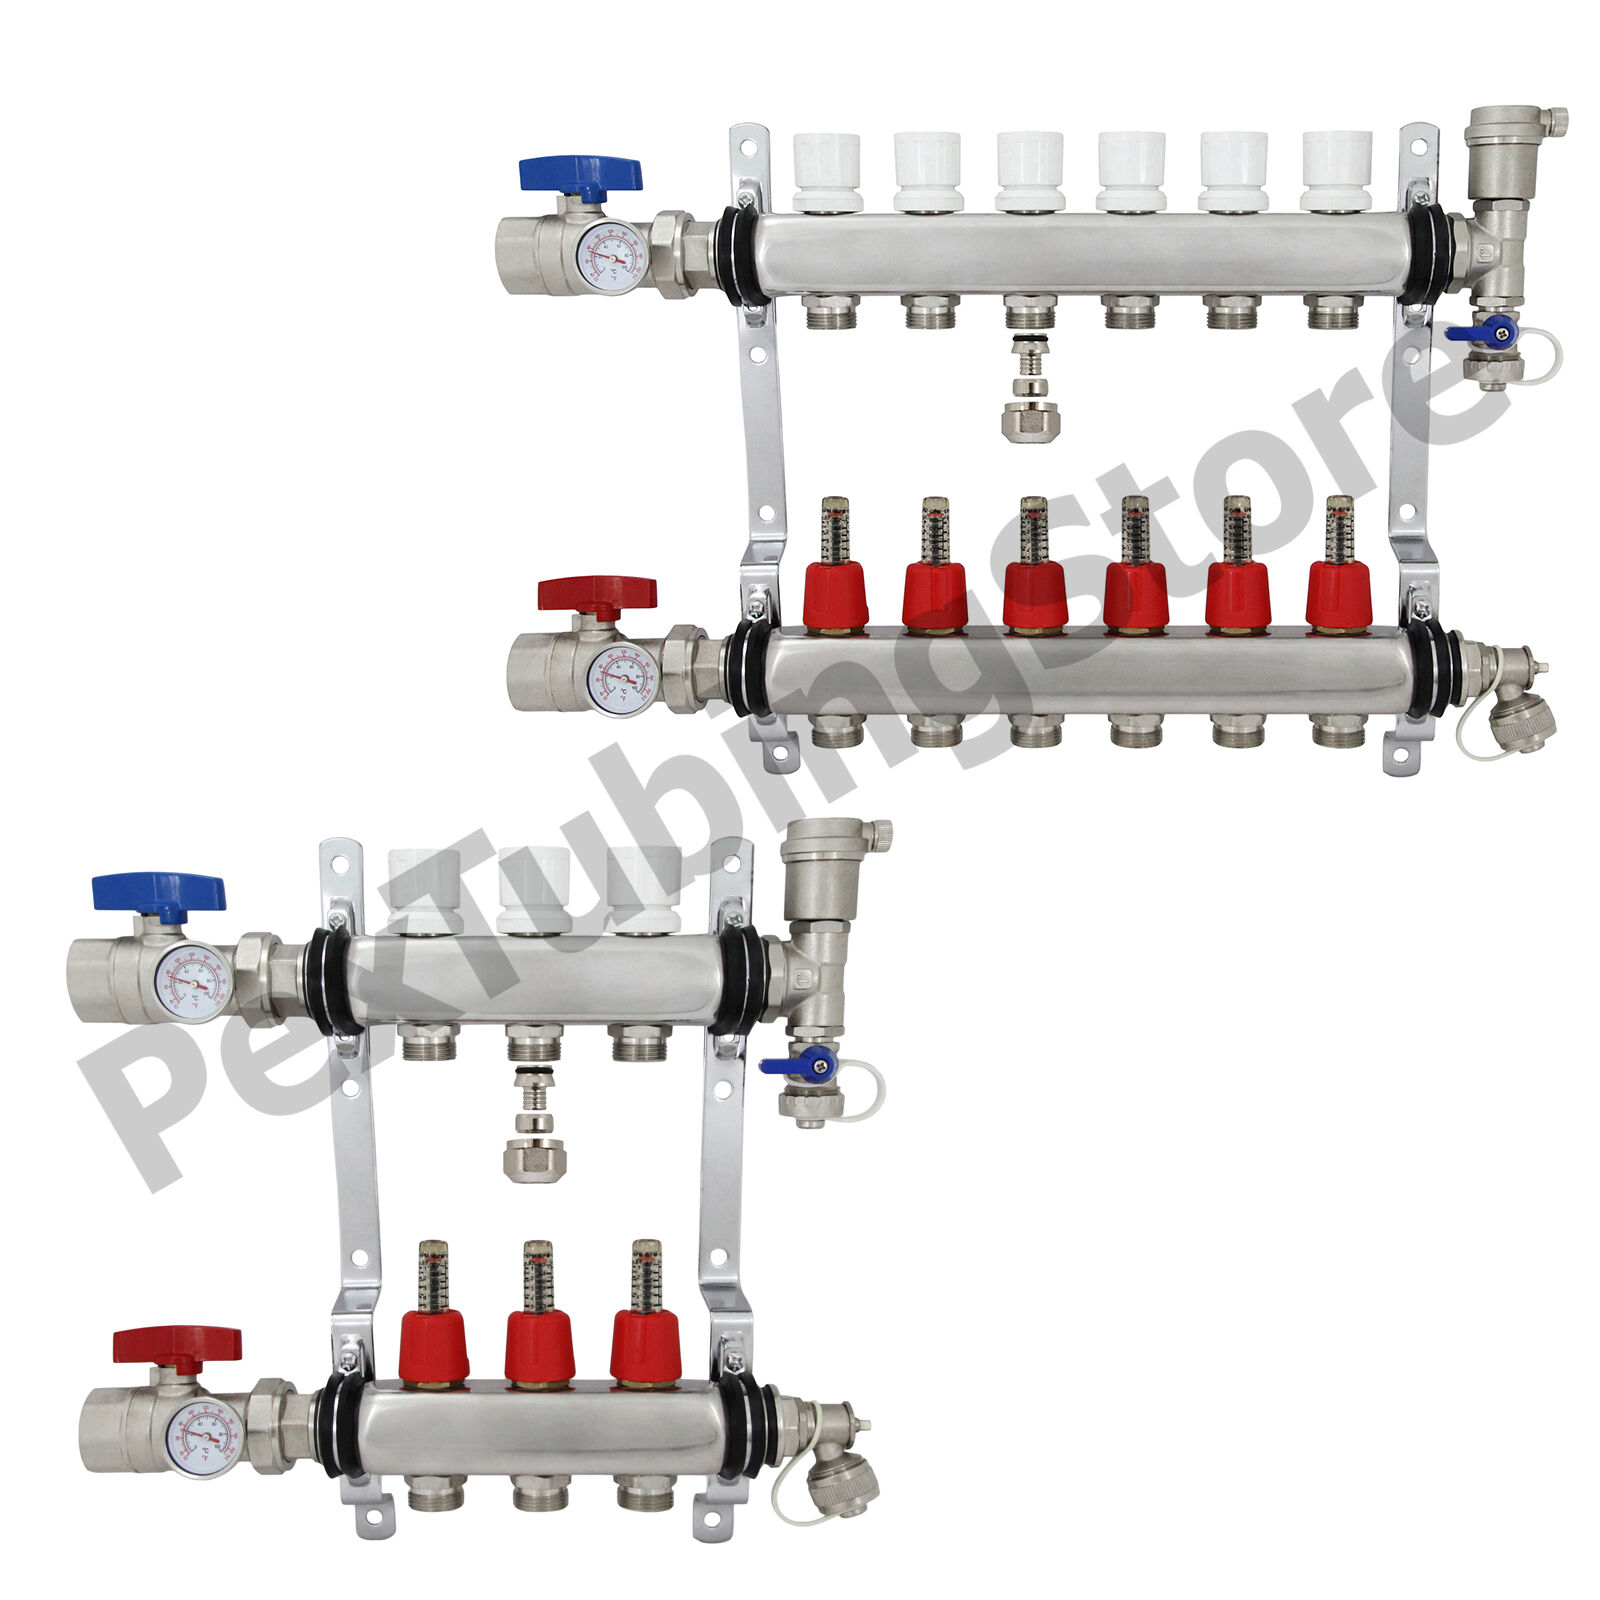 Купить 2 - 12 Branch Sizes: PEX Radiant Floor Heating Manifold Set - Stainless Steel